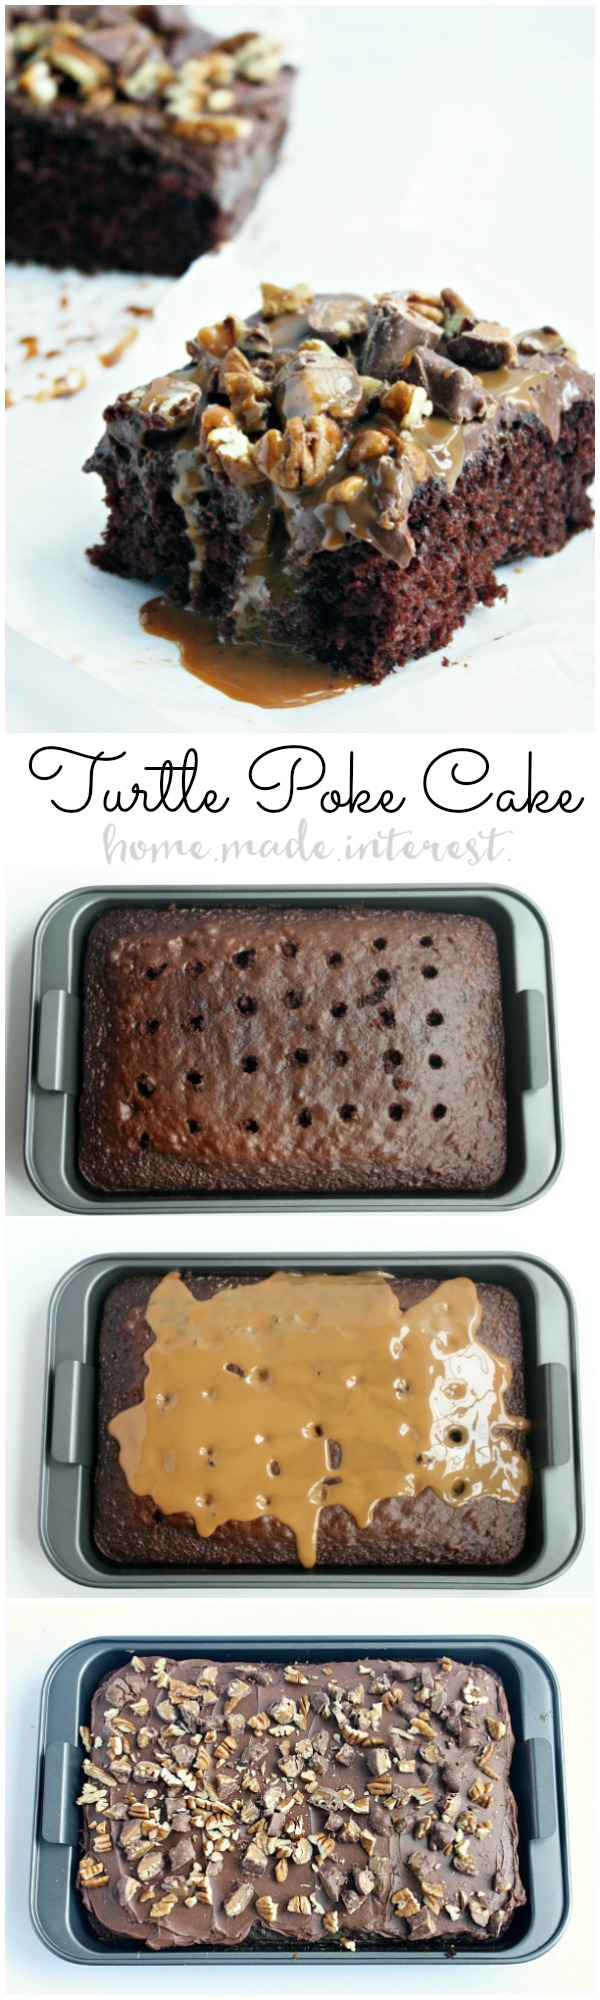 Turtle Poke Cake from Home. Made. Interest.